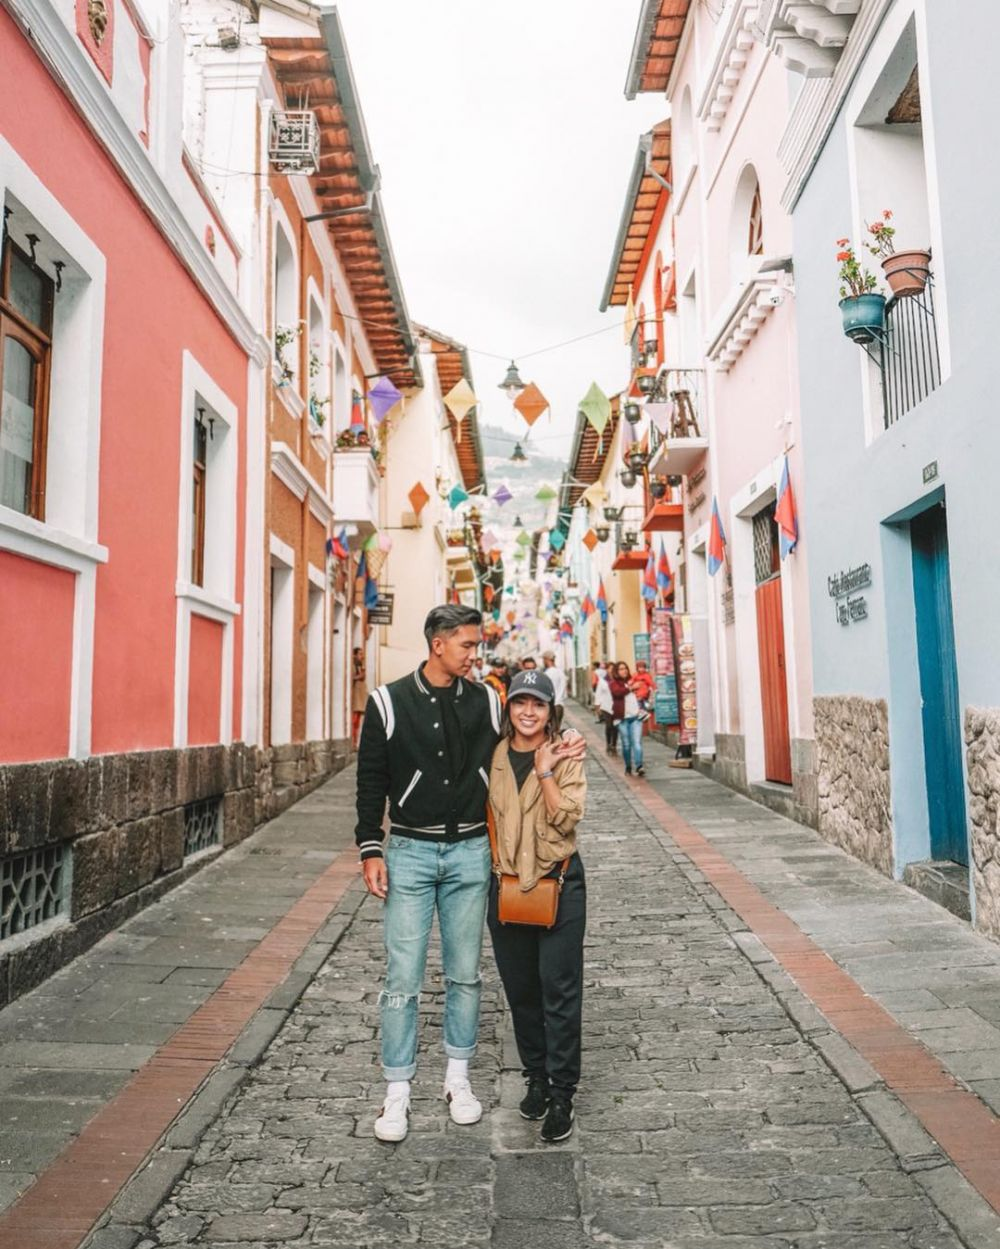 13 Potret Indra Priawan temani Nikita Willy travelling, sweet abis! Instagram